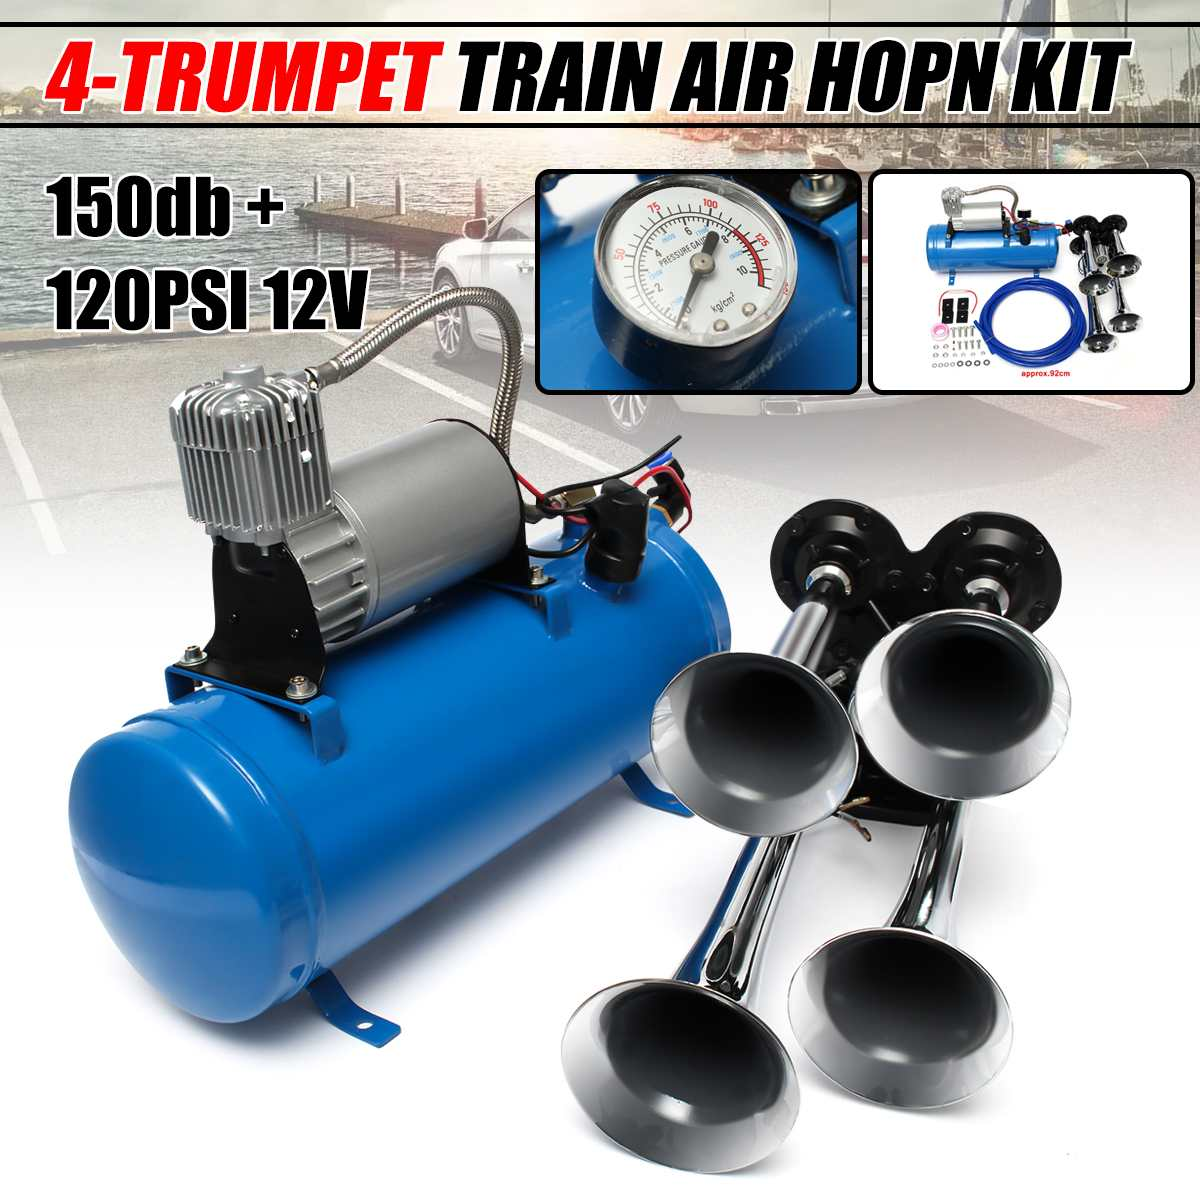 12 V/24 V 120 PSI 4 Train d'air Chrome corne trompette véhicule bleu compresseur tube 150dB